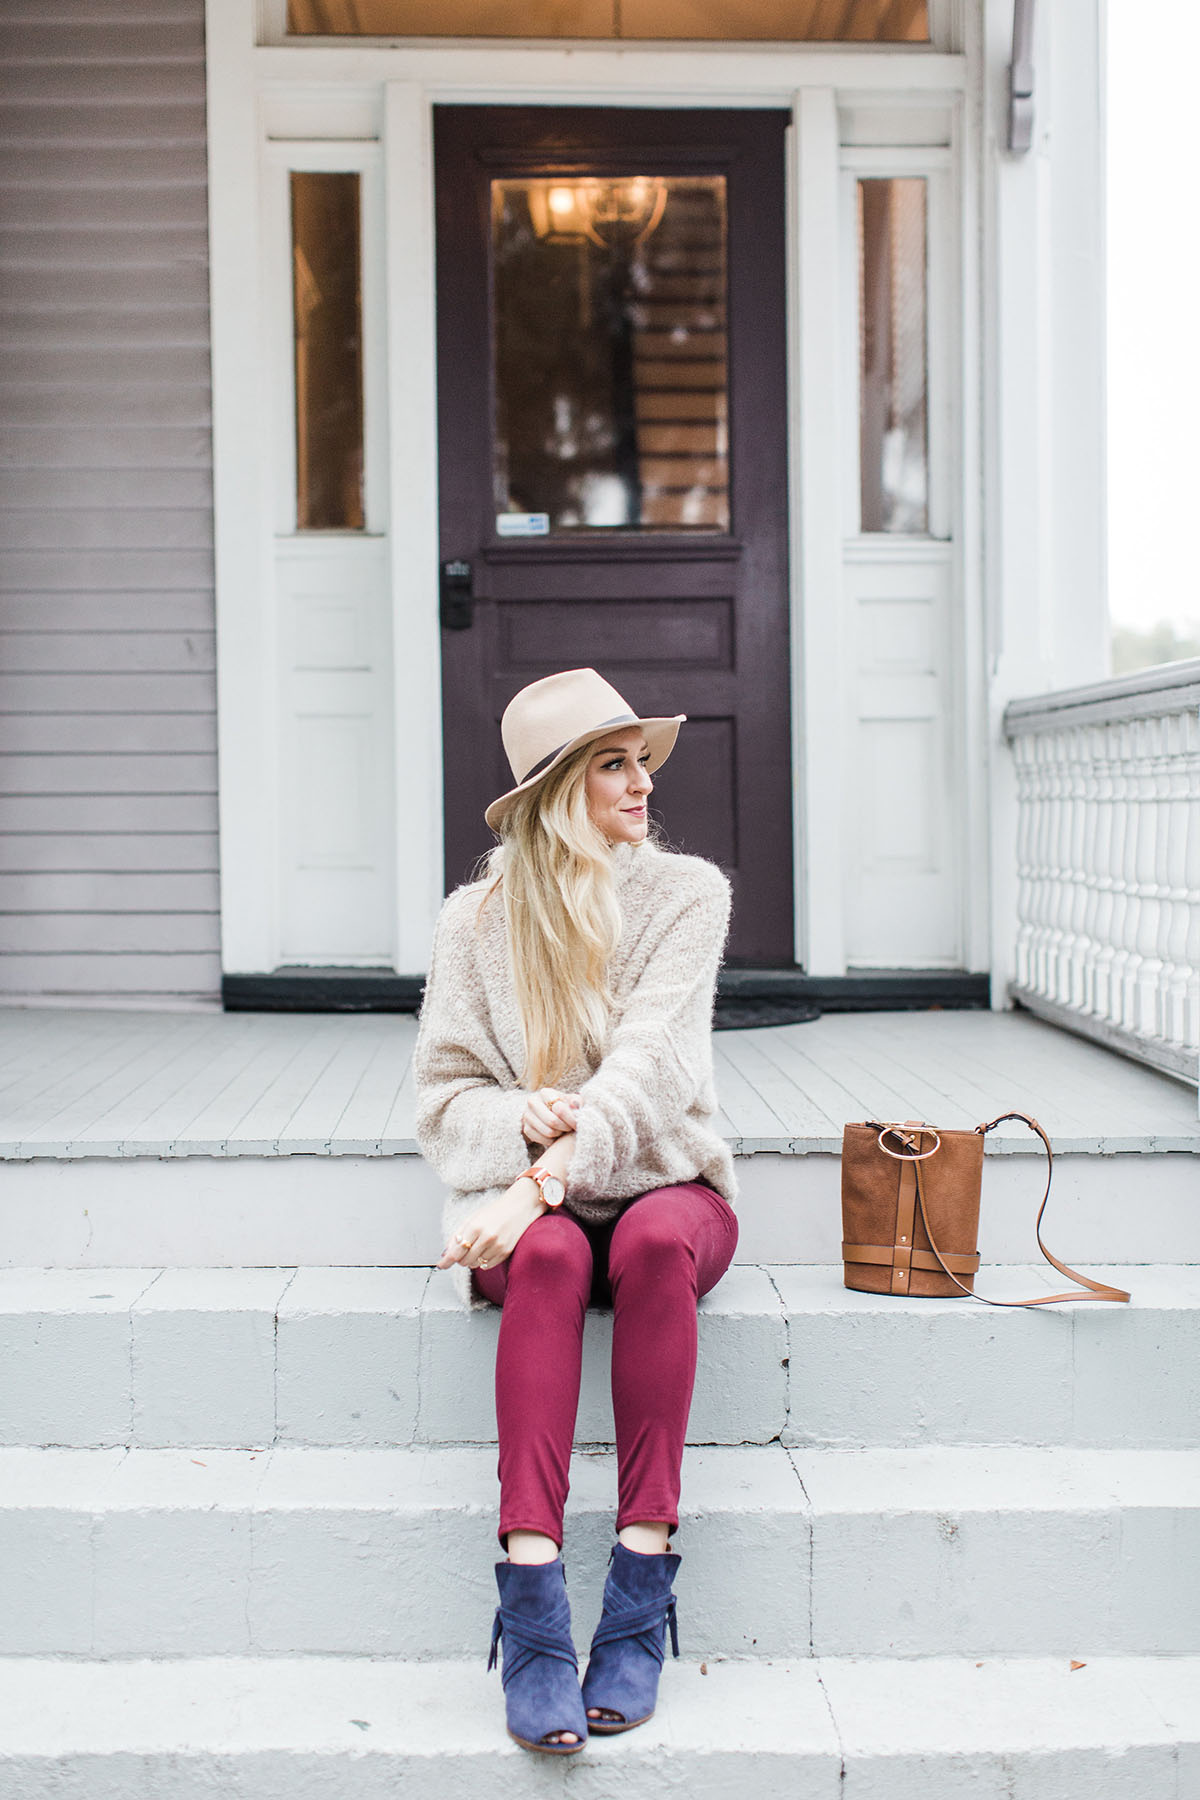 Adding Color Into Your Fall Wardrobe | Navy Open Toe Booties | Hudson Jeans in Burgundy | Free People Knit Turtleneck Sweater